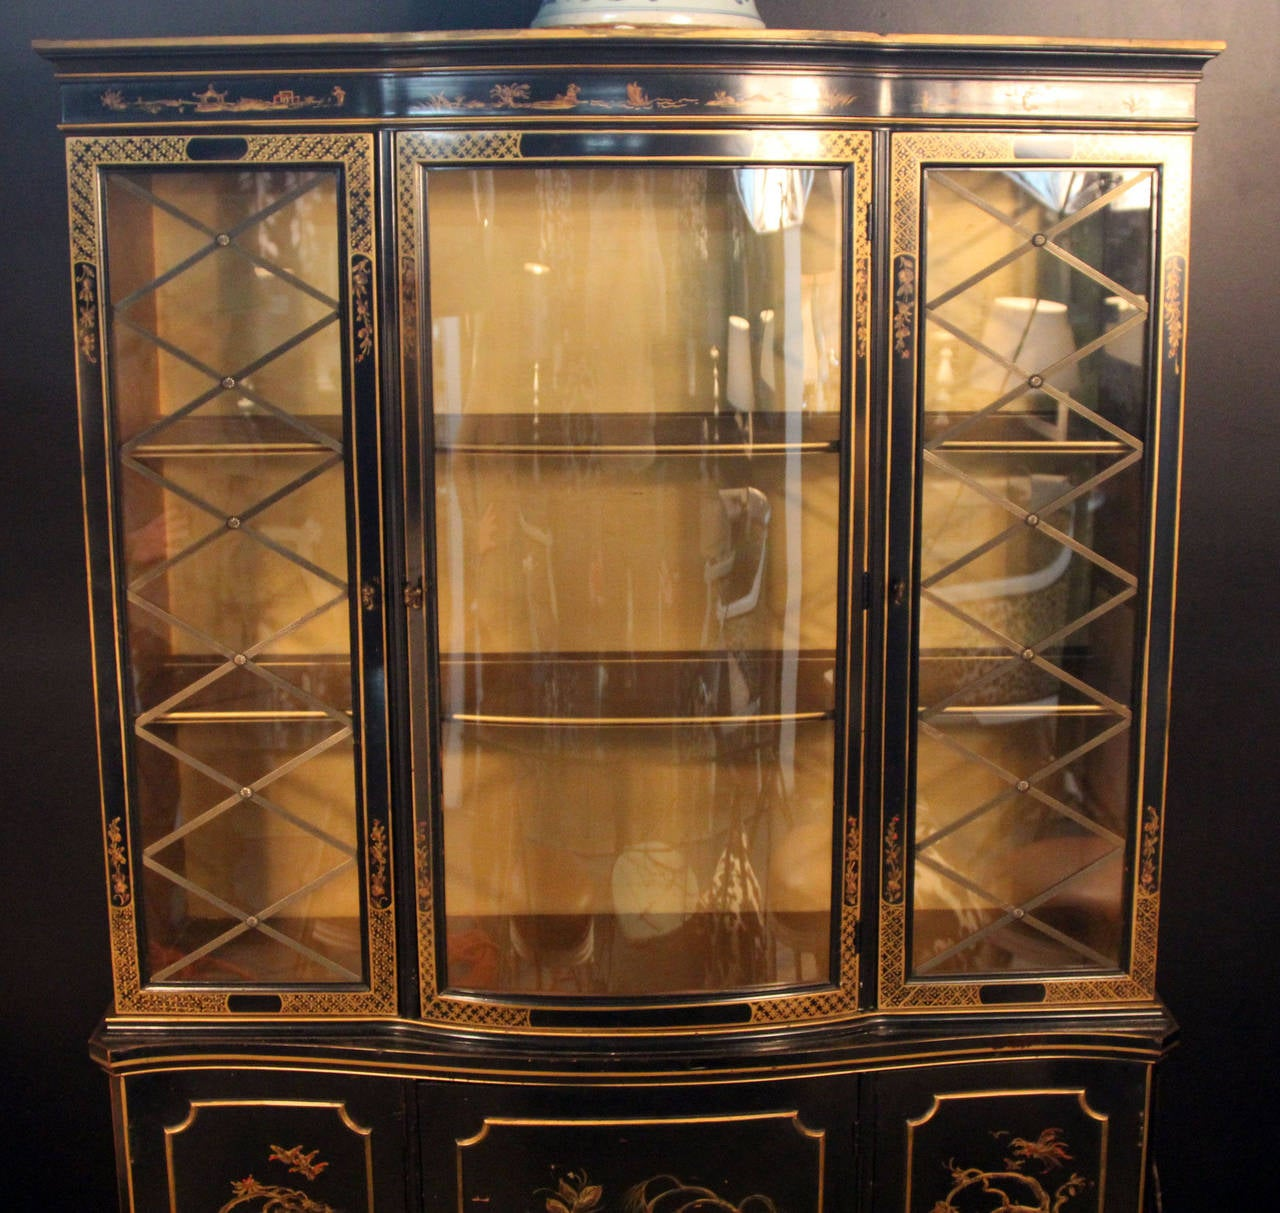 1940s Black Lacquered With Gold Decoration Breakfront Cabinet. Brass  Fittings And Glass Detail. Gold